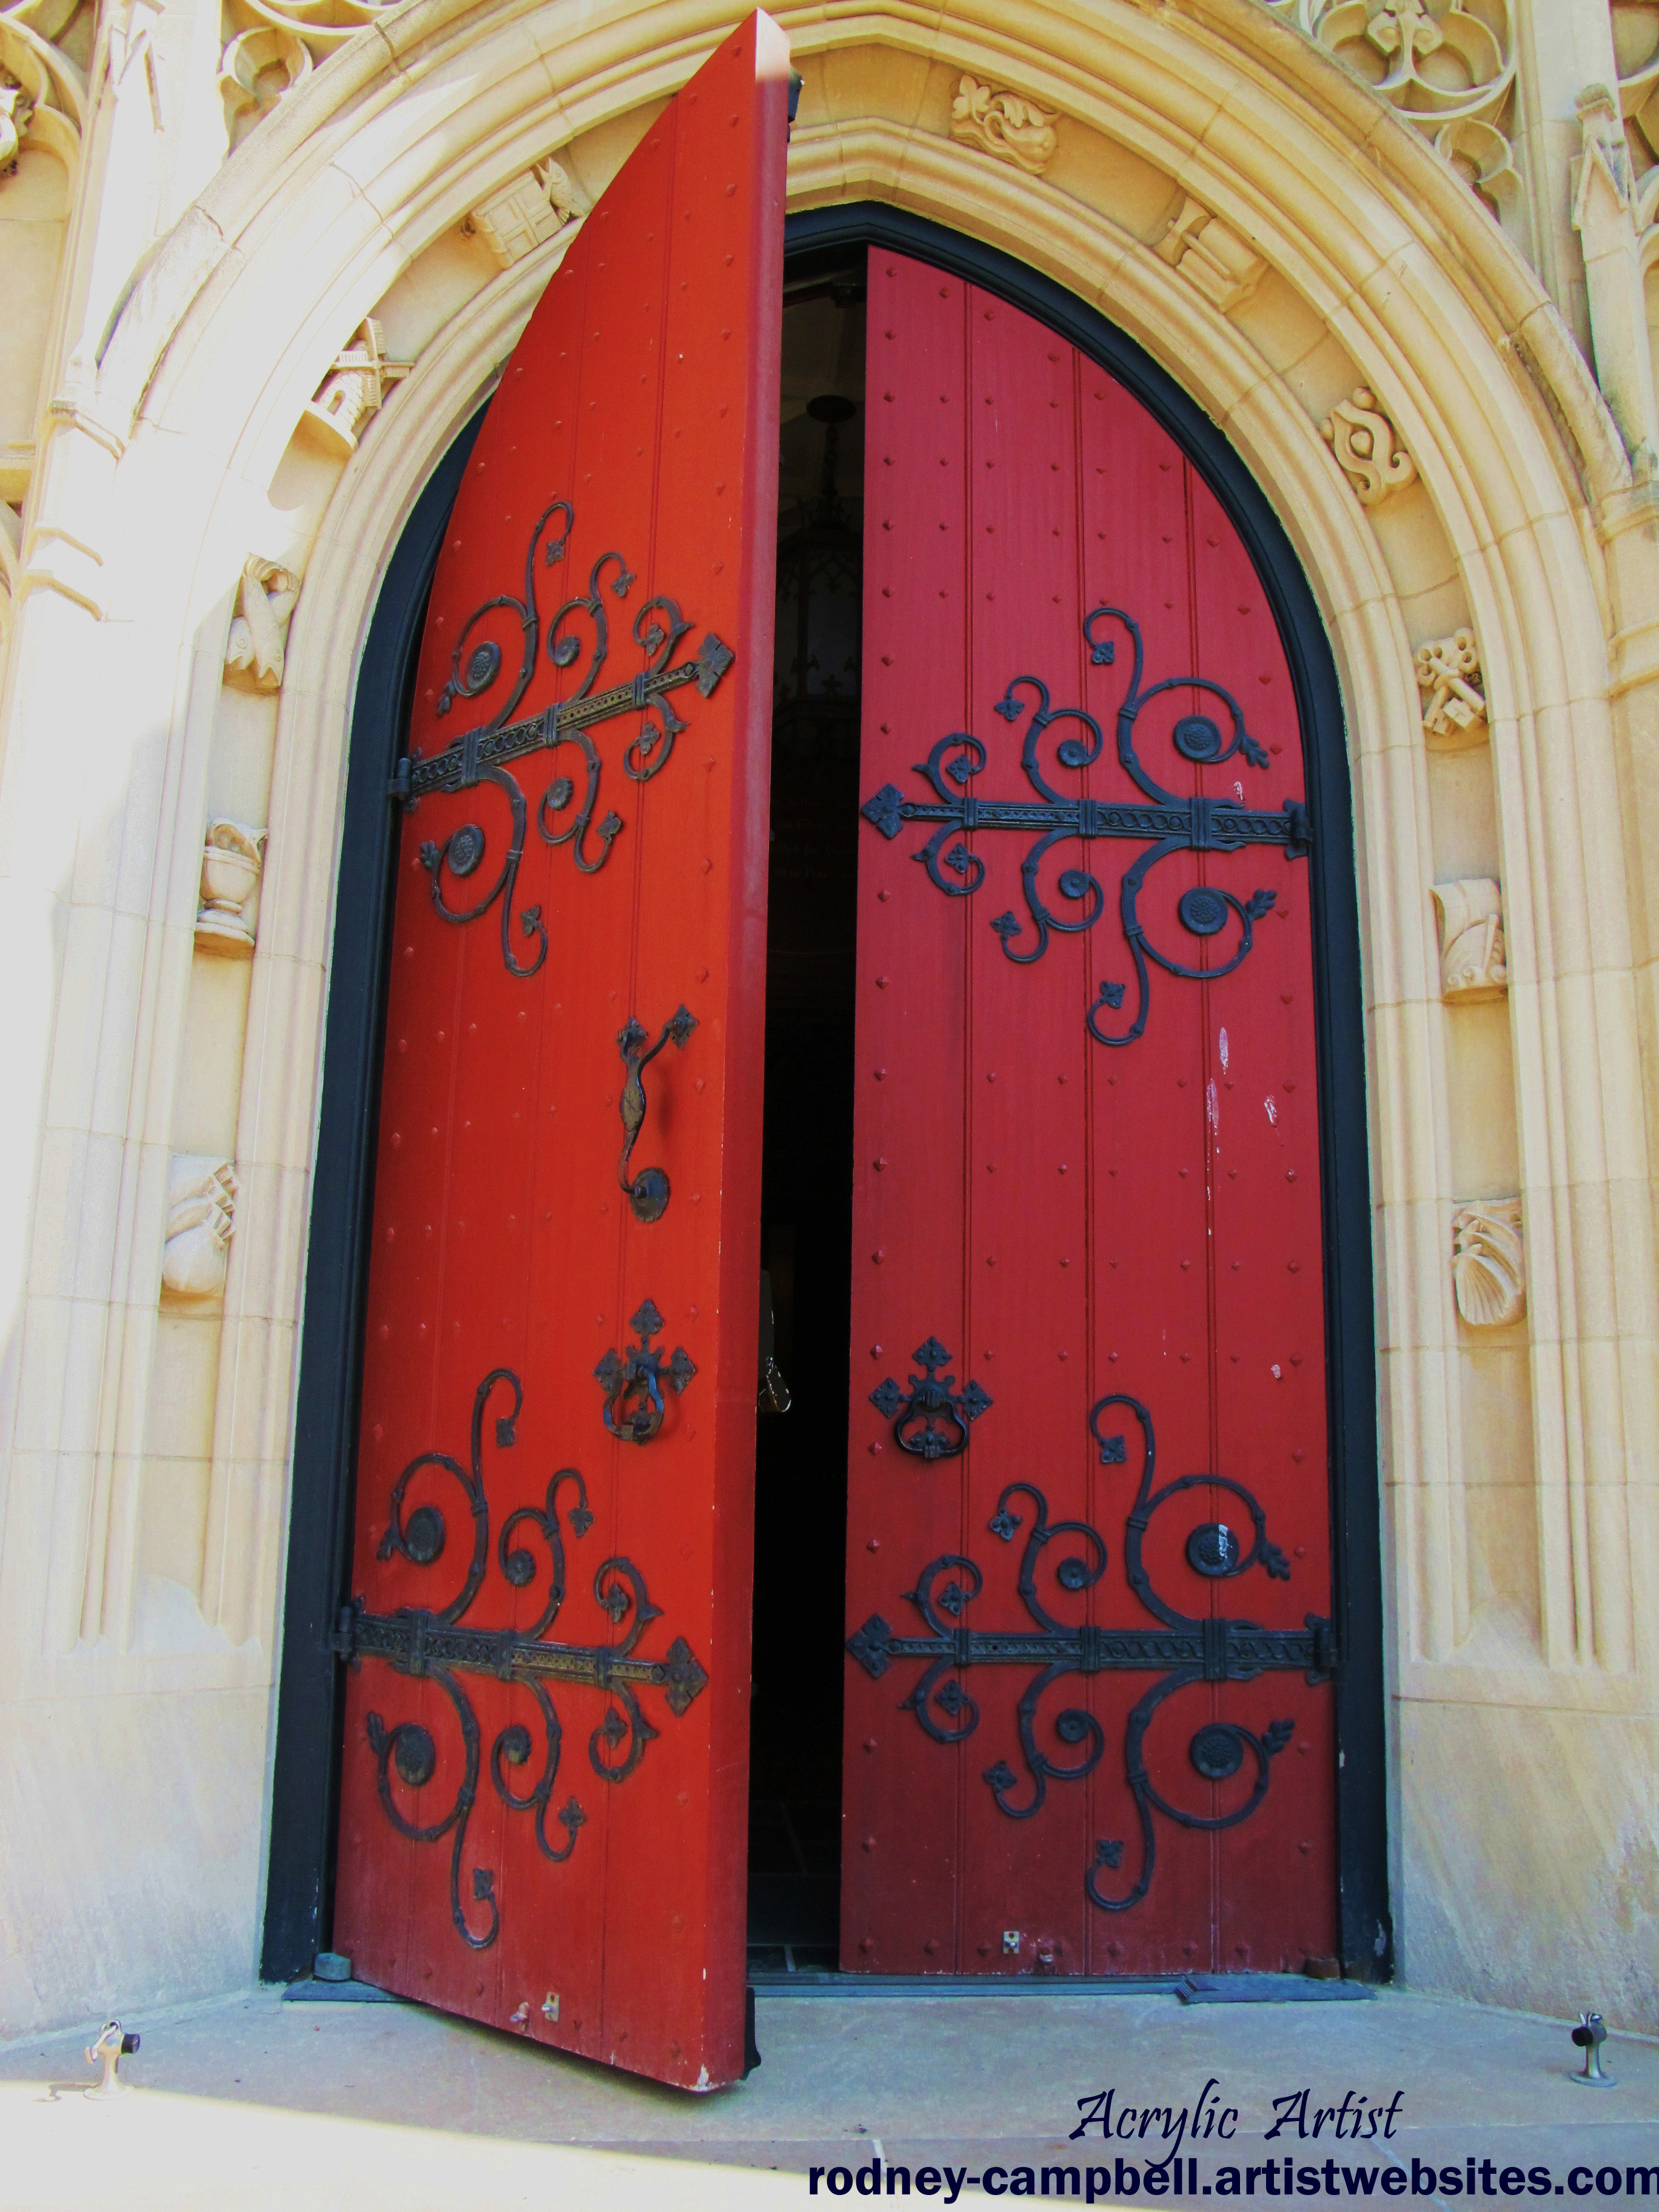 A Destorted dimension  Church-red-door